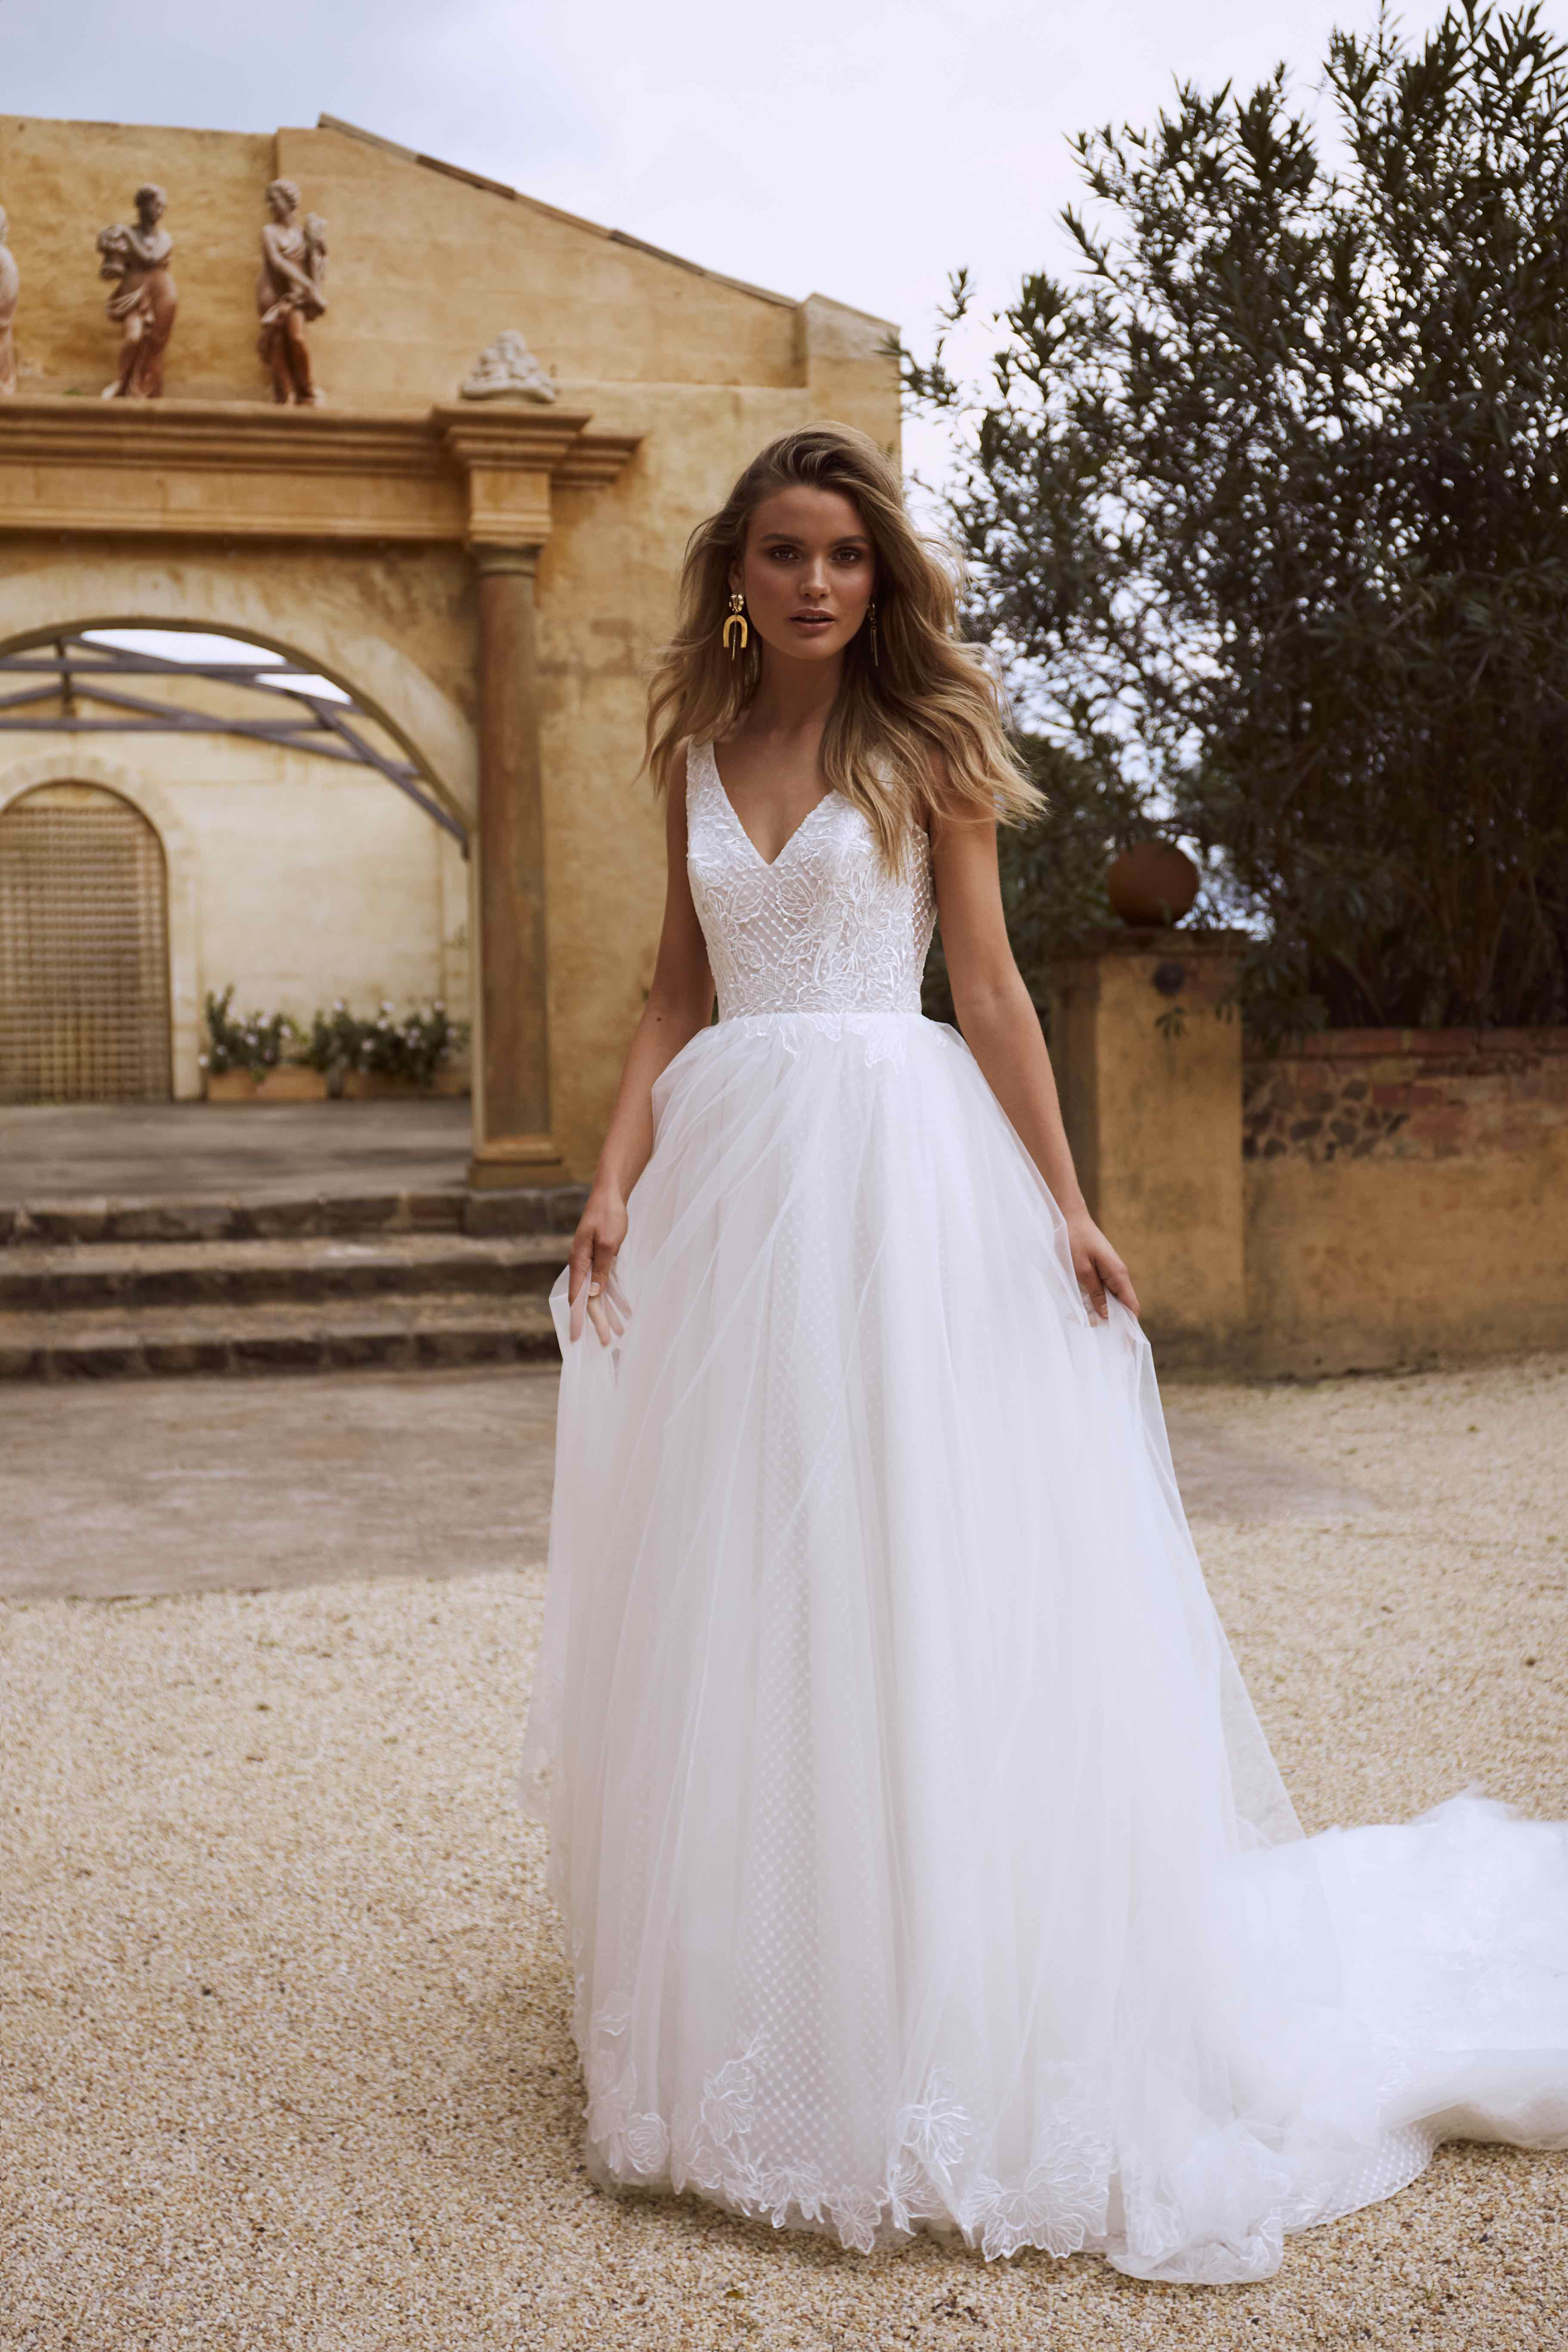 Eamon by Madi Lane | Luv Bridal & Formal